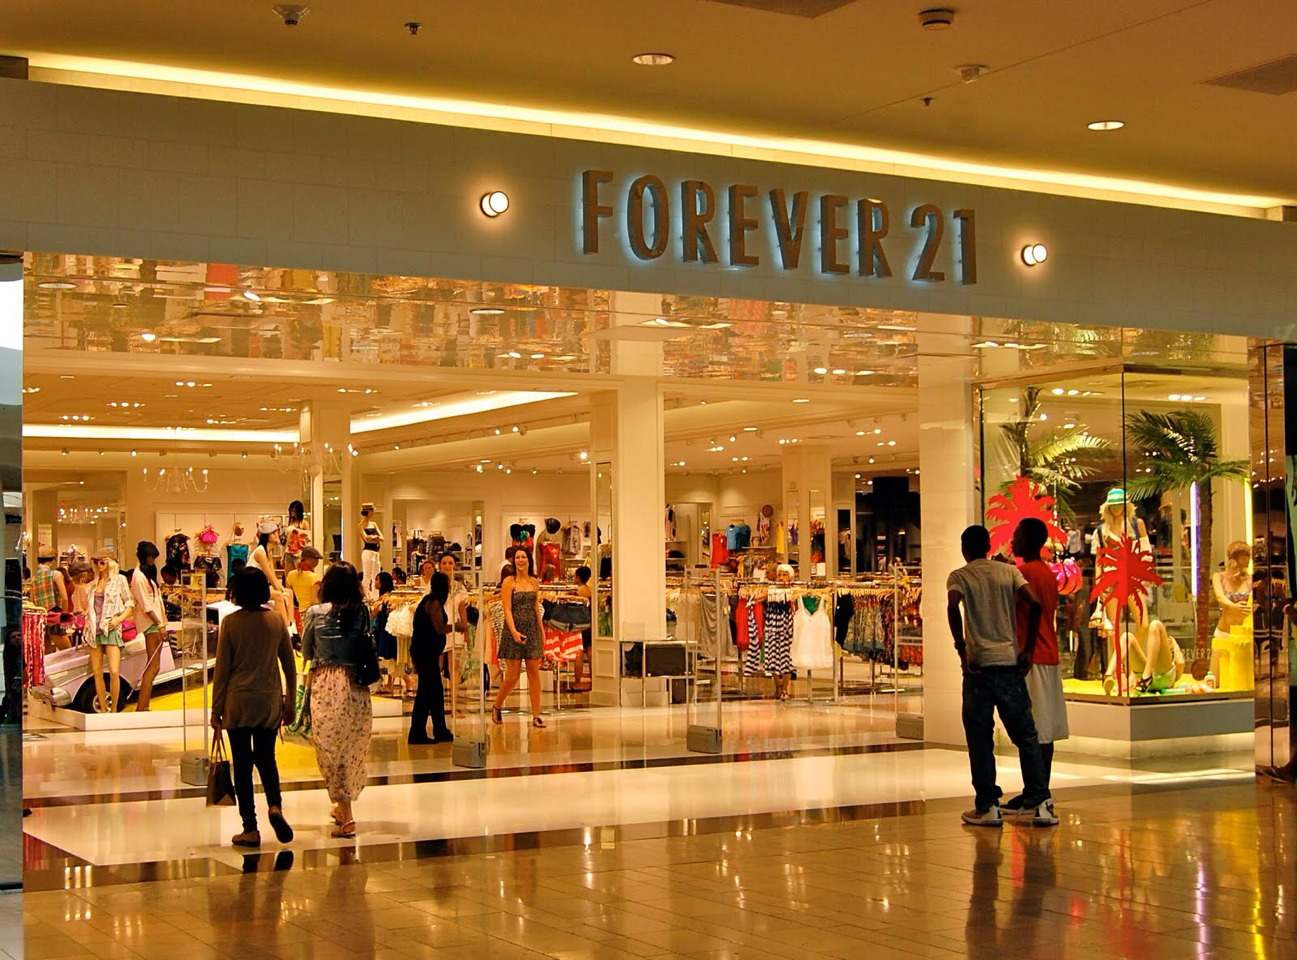 Another optional choice is forever 21, although it may cost a bit more.